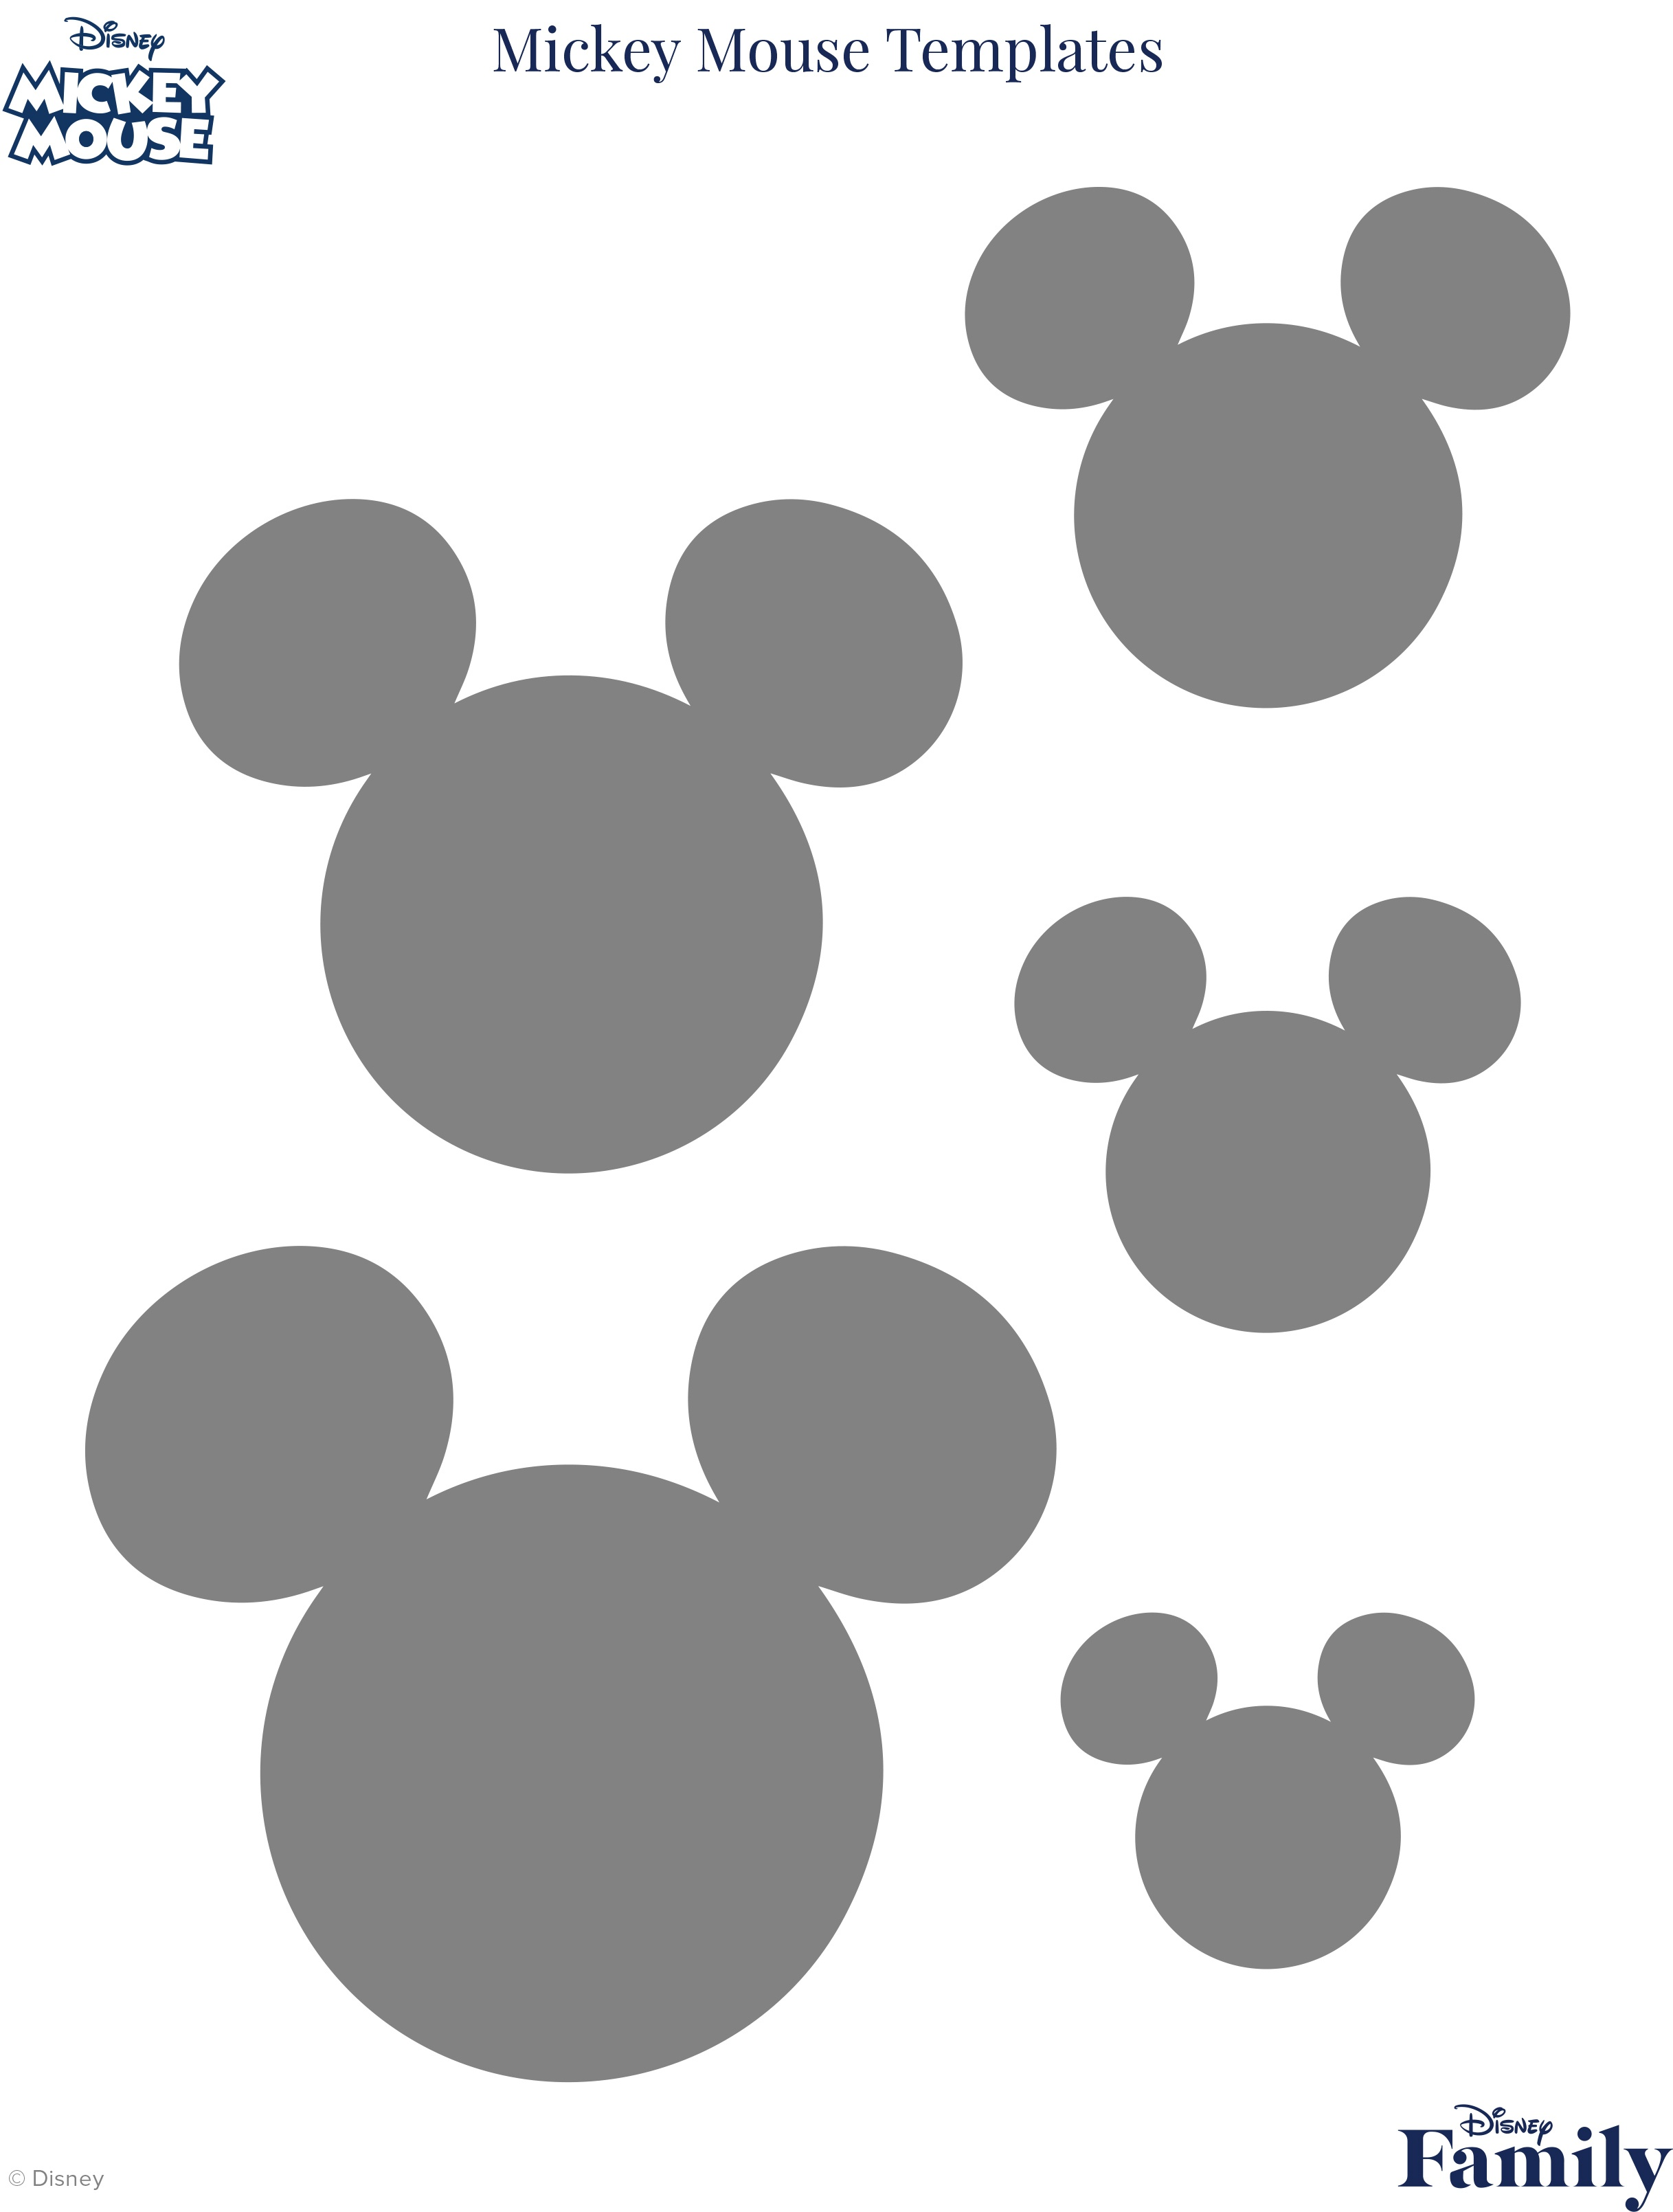 Mickey Mouse Template   Disney Family - Free Printable Disney Font Stencils